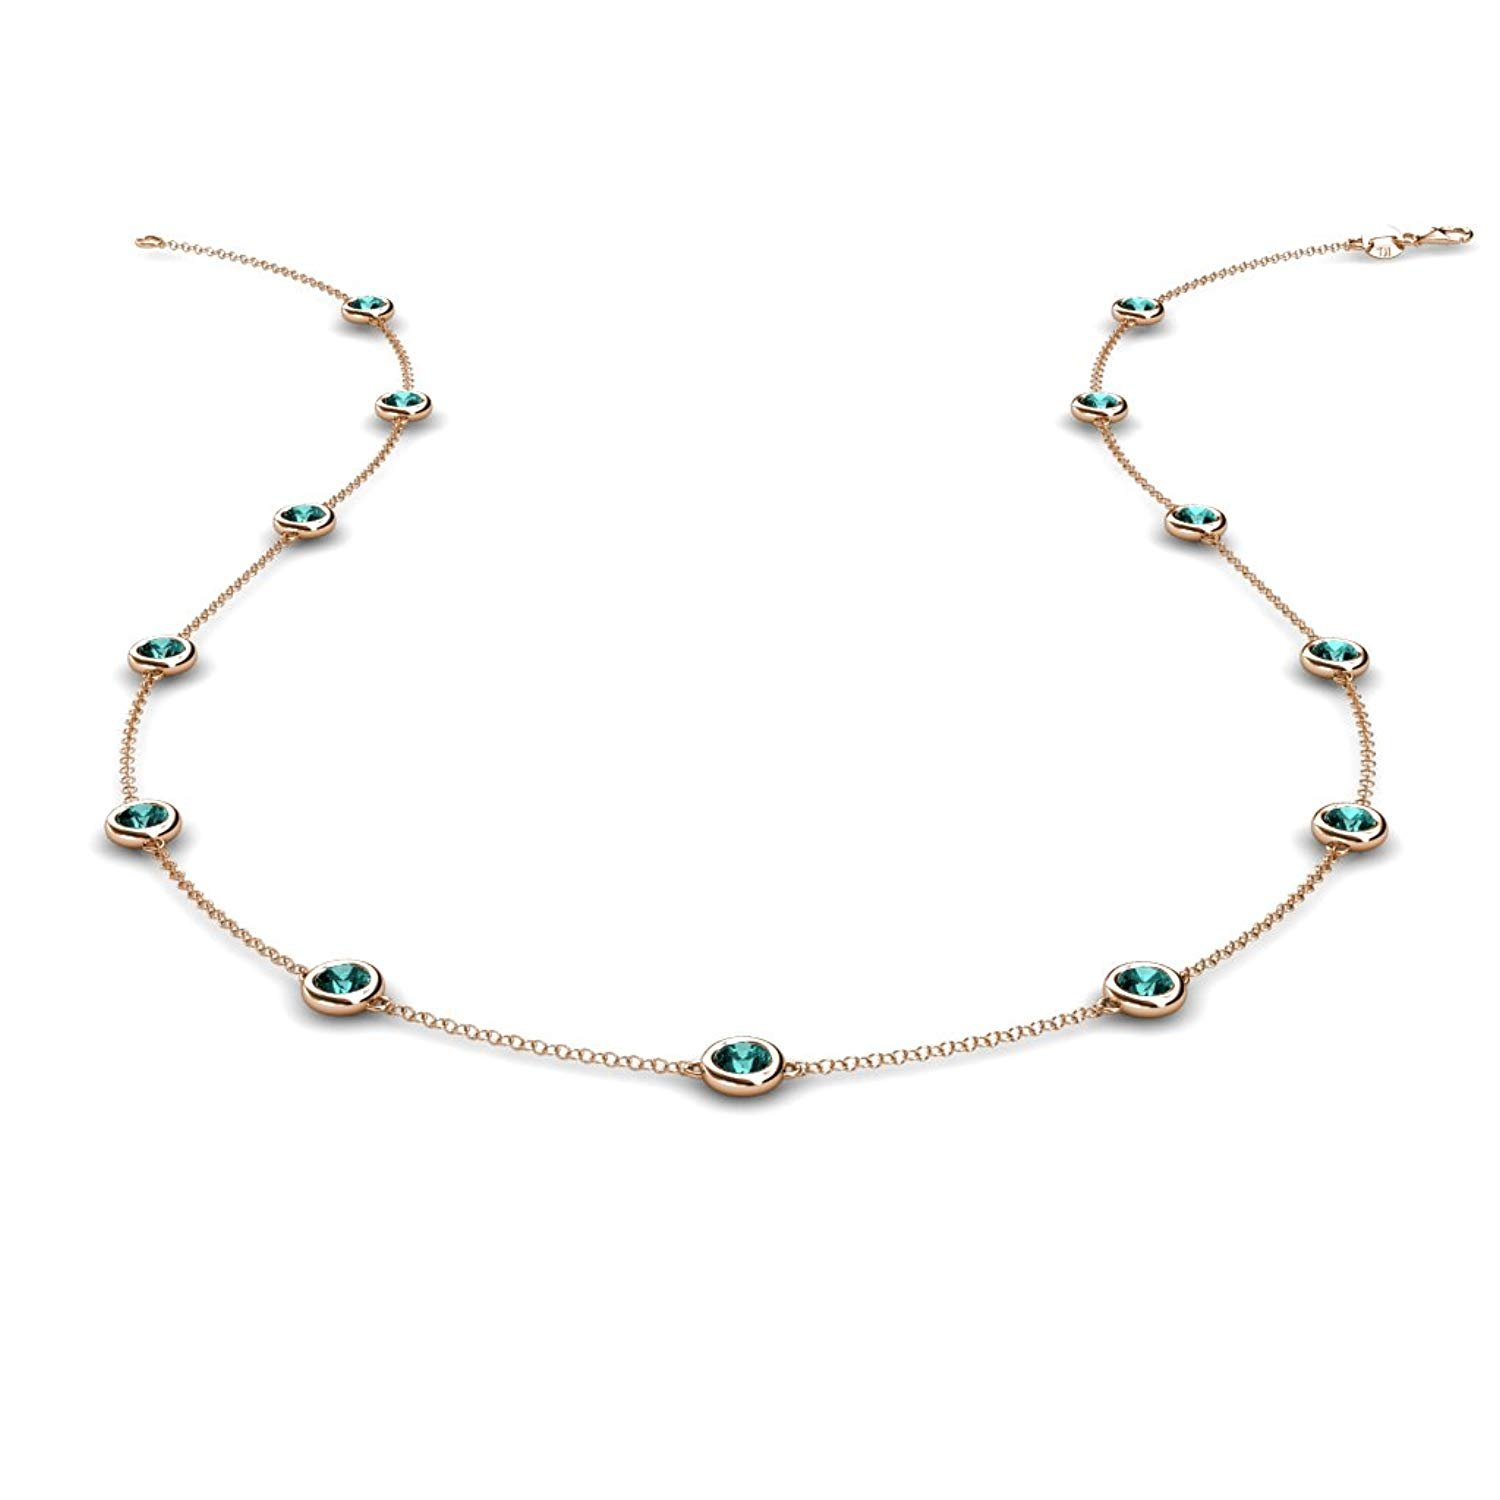 13 Station Blue Diamond on the Cable Necklace 1.30 Carat tw in 14K Rose Gold.18 Inches in Length by TriJewels